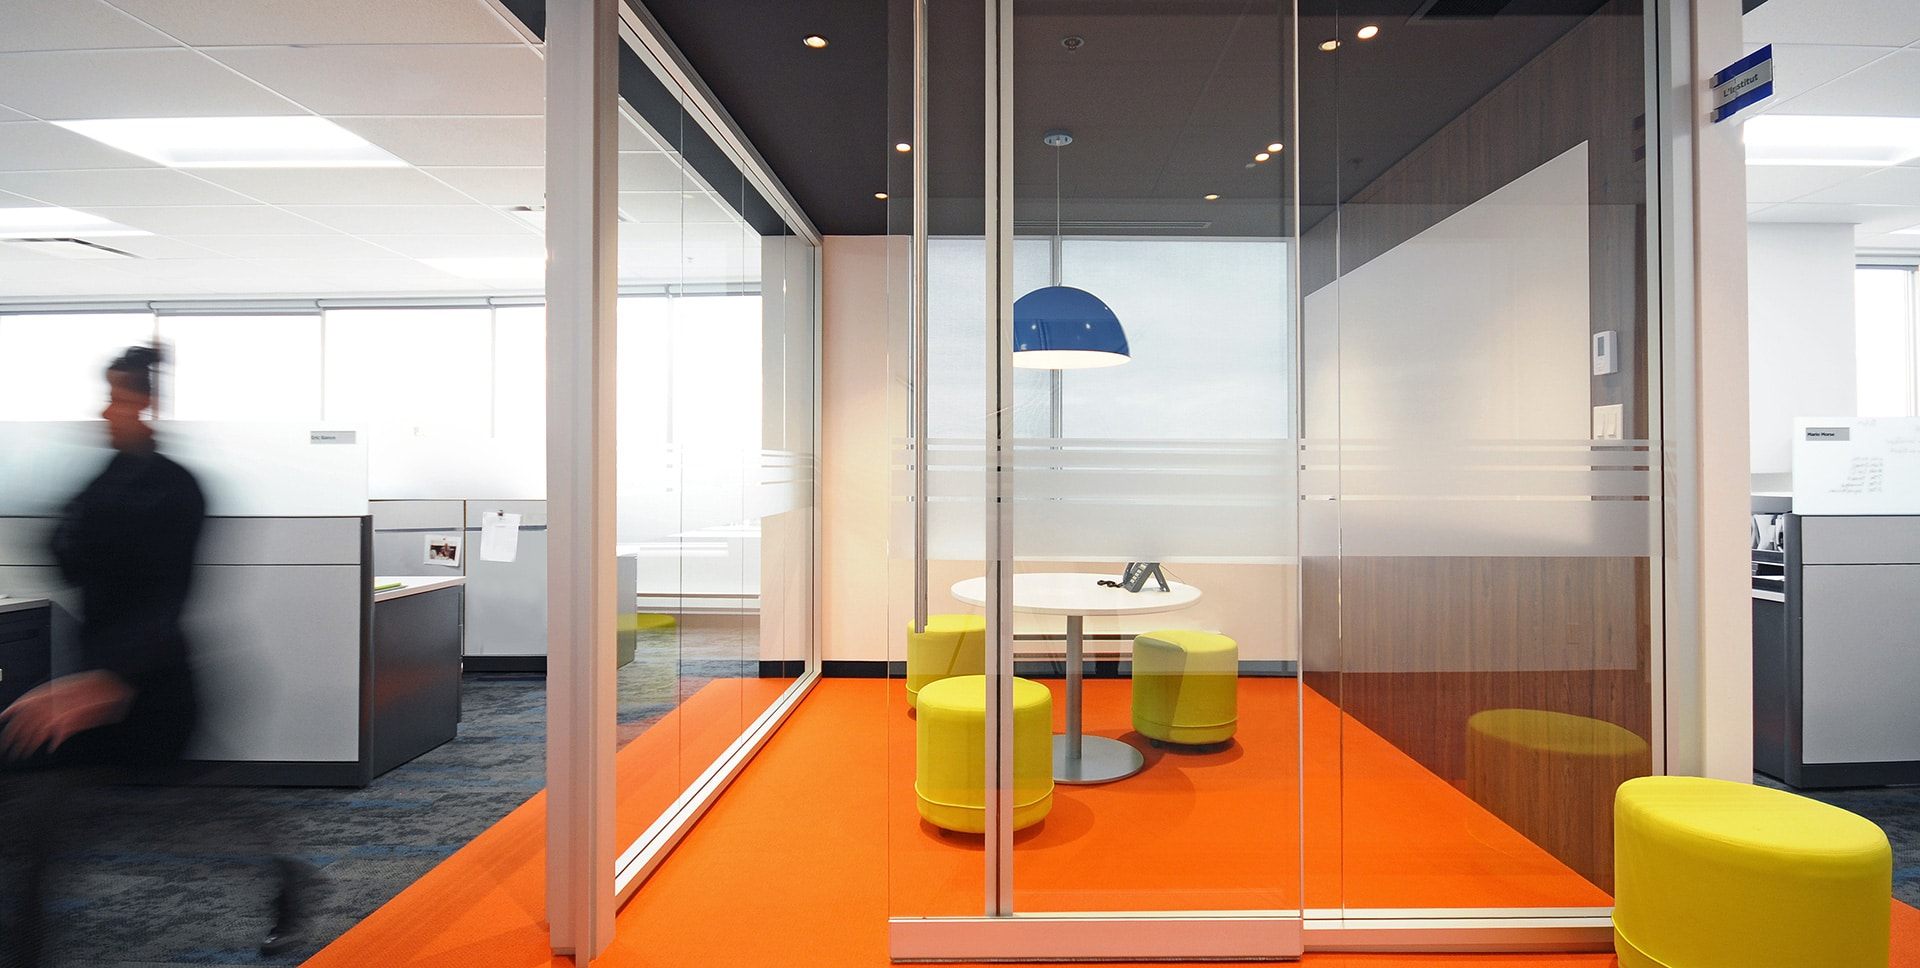 Meeting room at Hub International offices designed by VAD